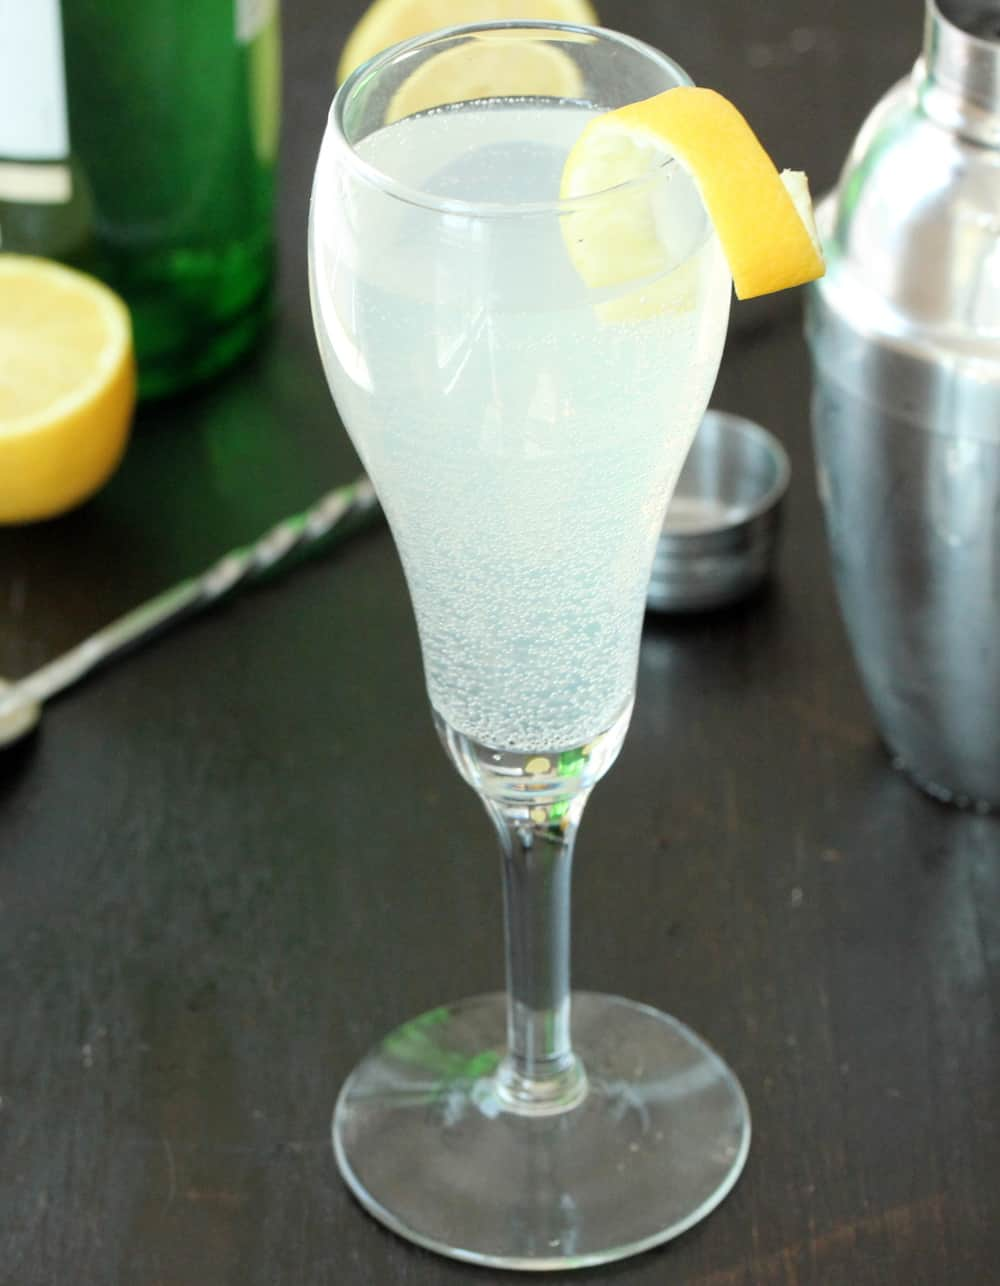 A Champagne flute filled with a French 75 cocktail with a lemon twist on it next to a cocktail shaker.